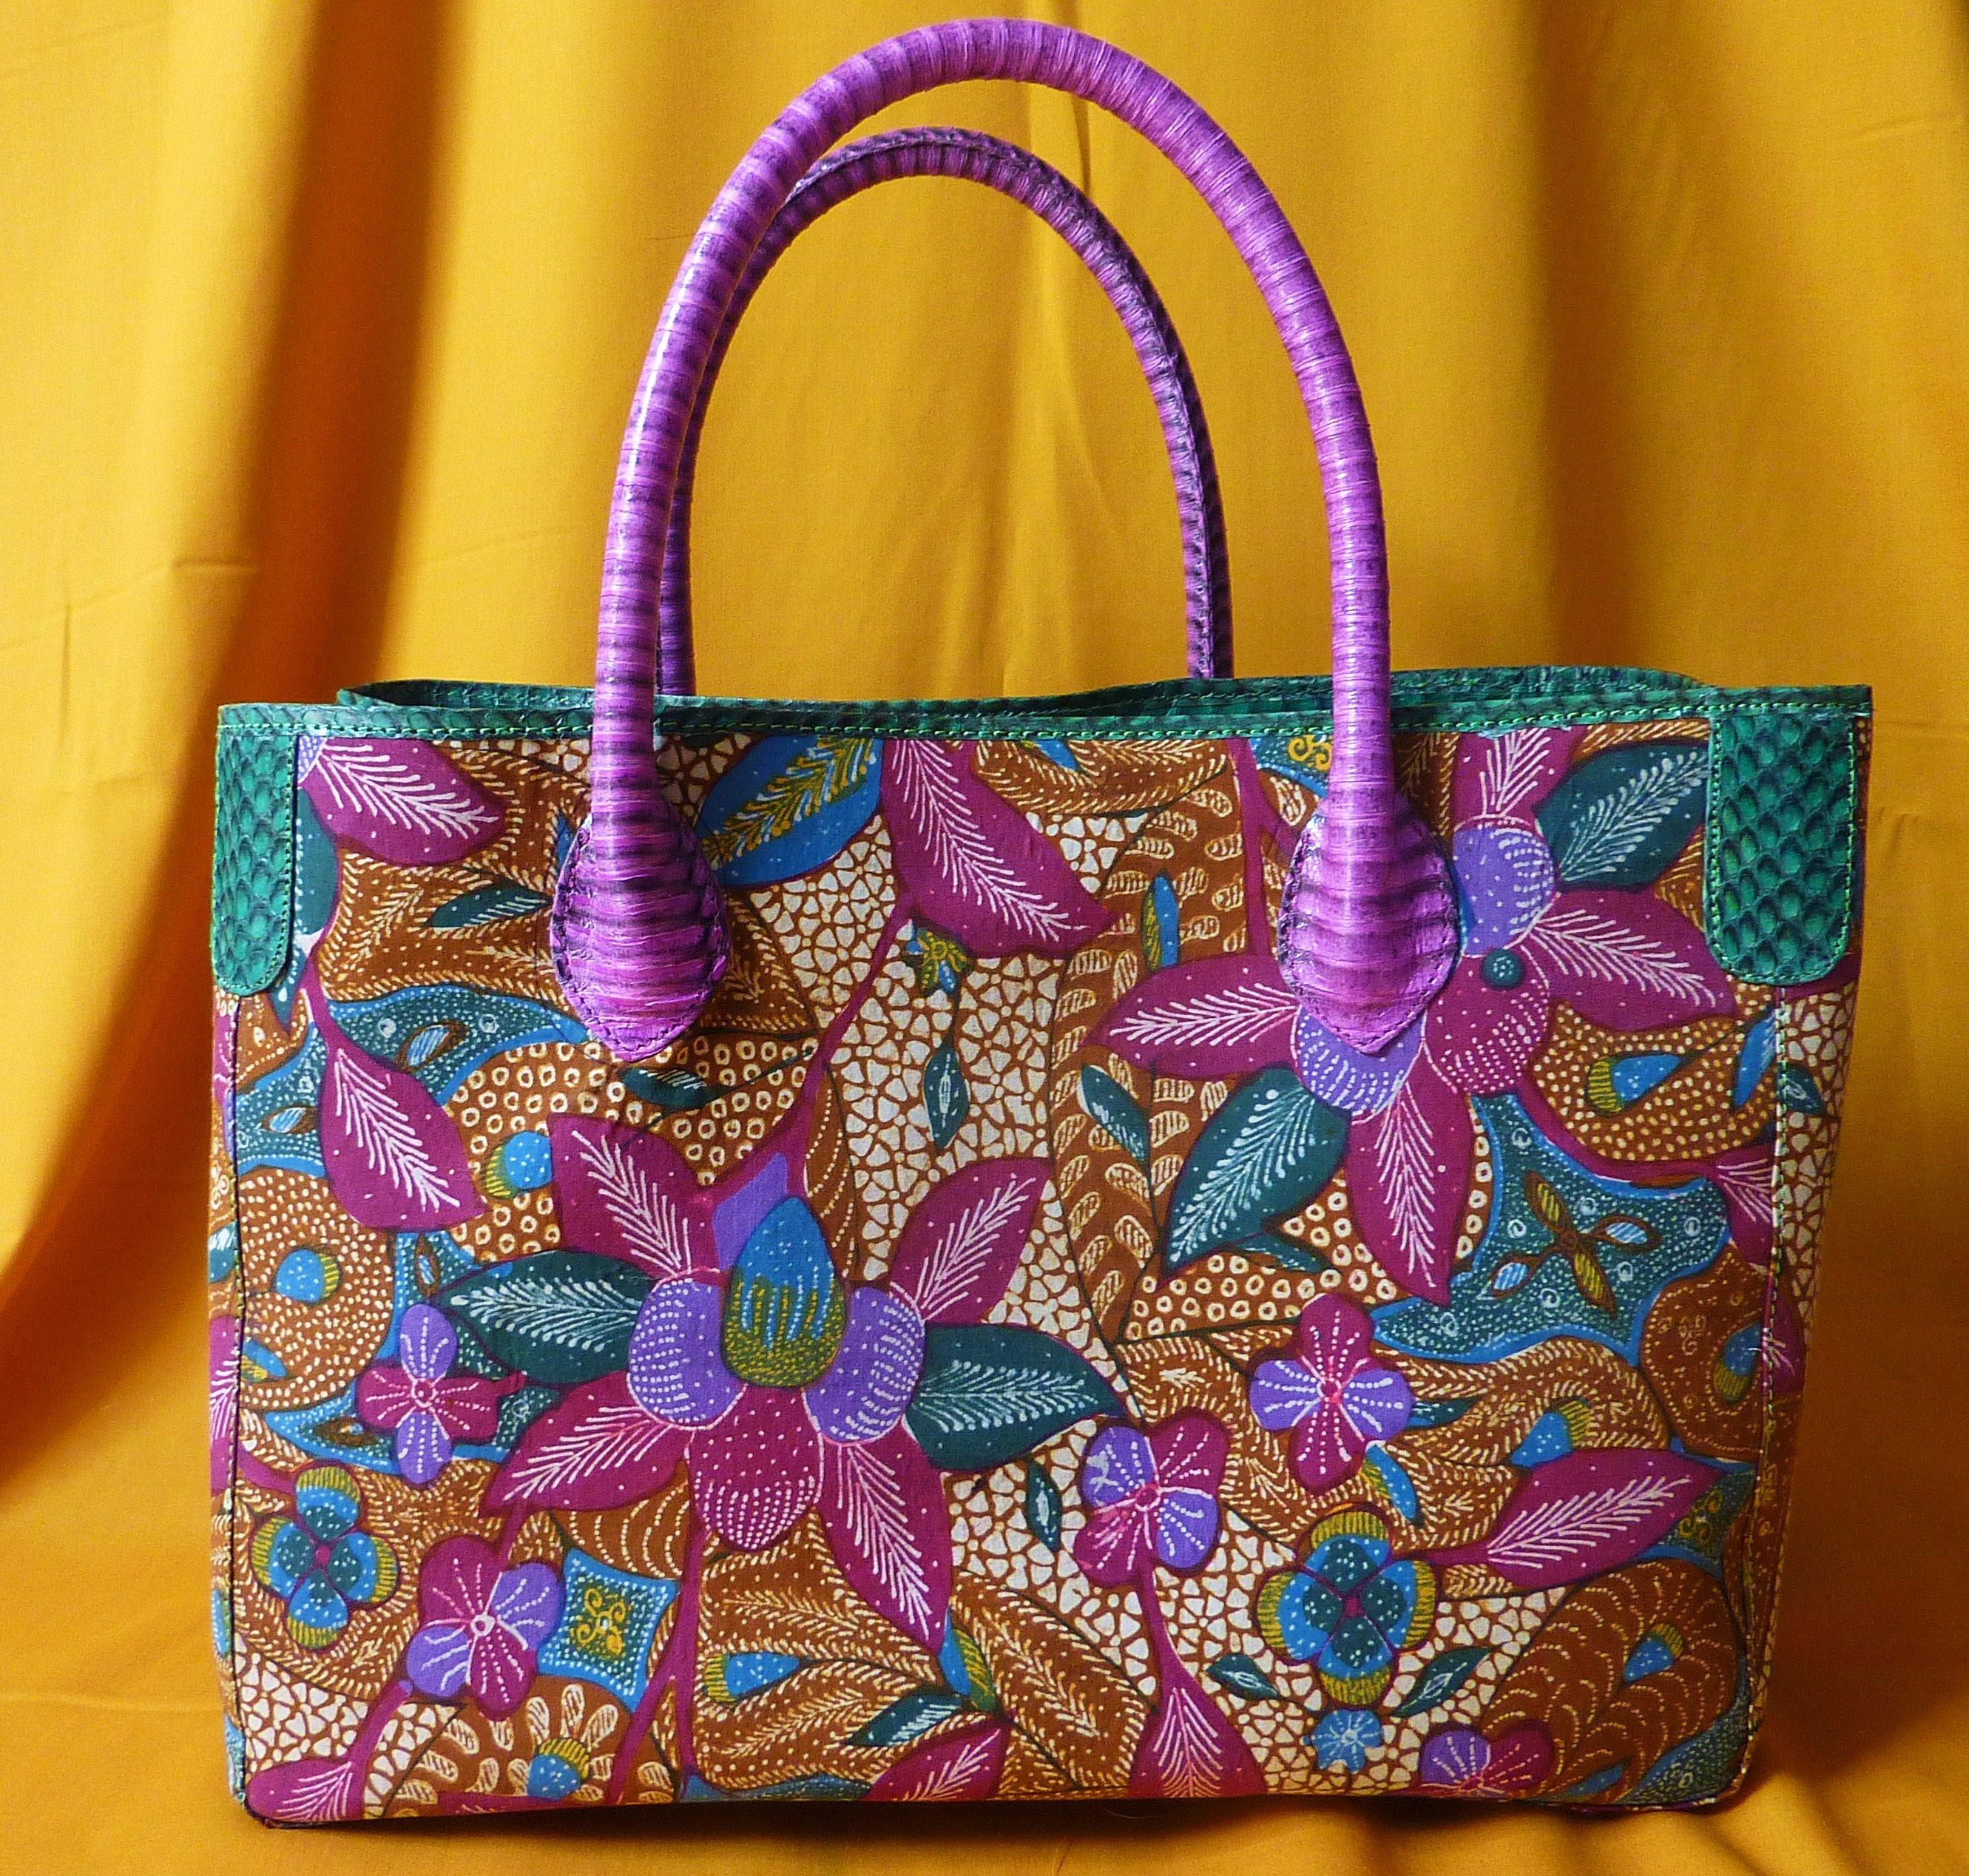 Normally to be honest I don t really like snake leather But the Batik bags bined with the colourful Phyton leather from de batik caress my eyes